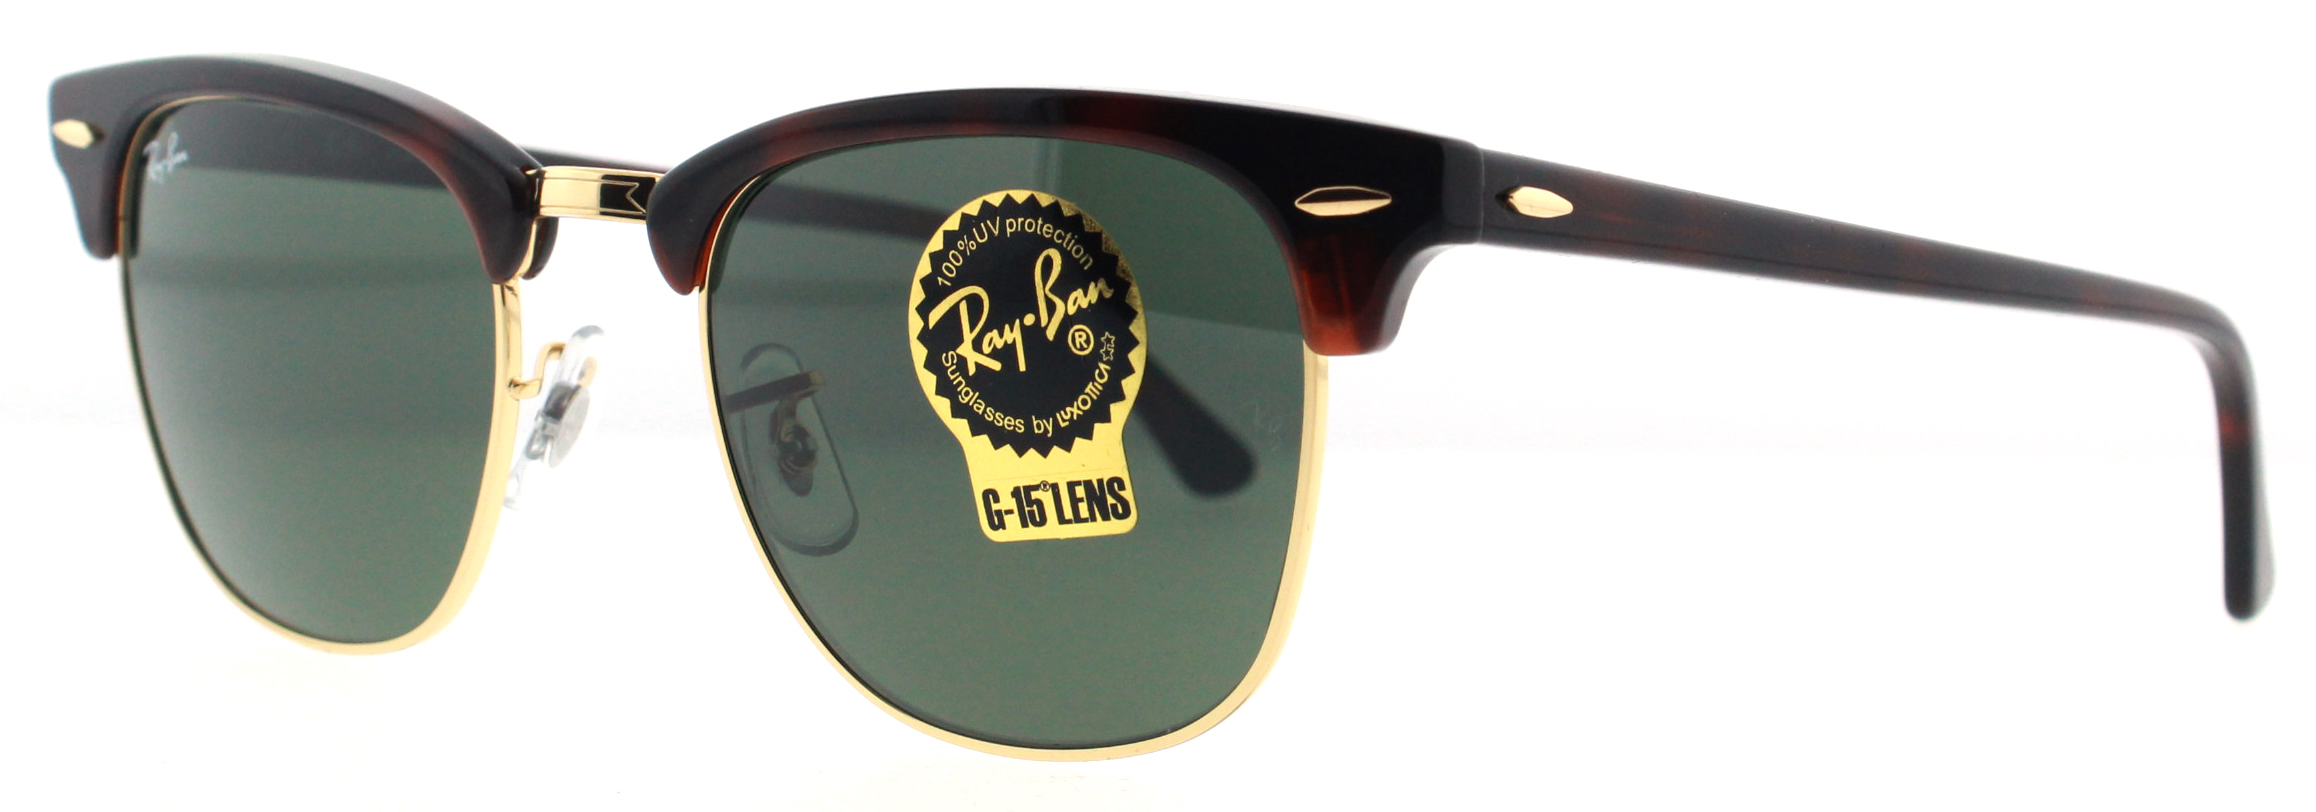 clubmaster classic tortoise  Ray Ban RB 3016 Clubmaster Unisex Sunglasses- Black and Tortoise